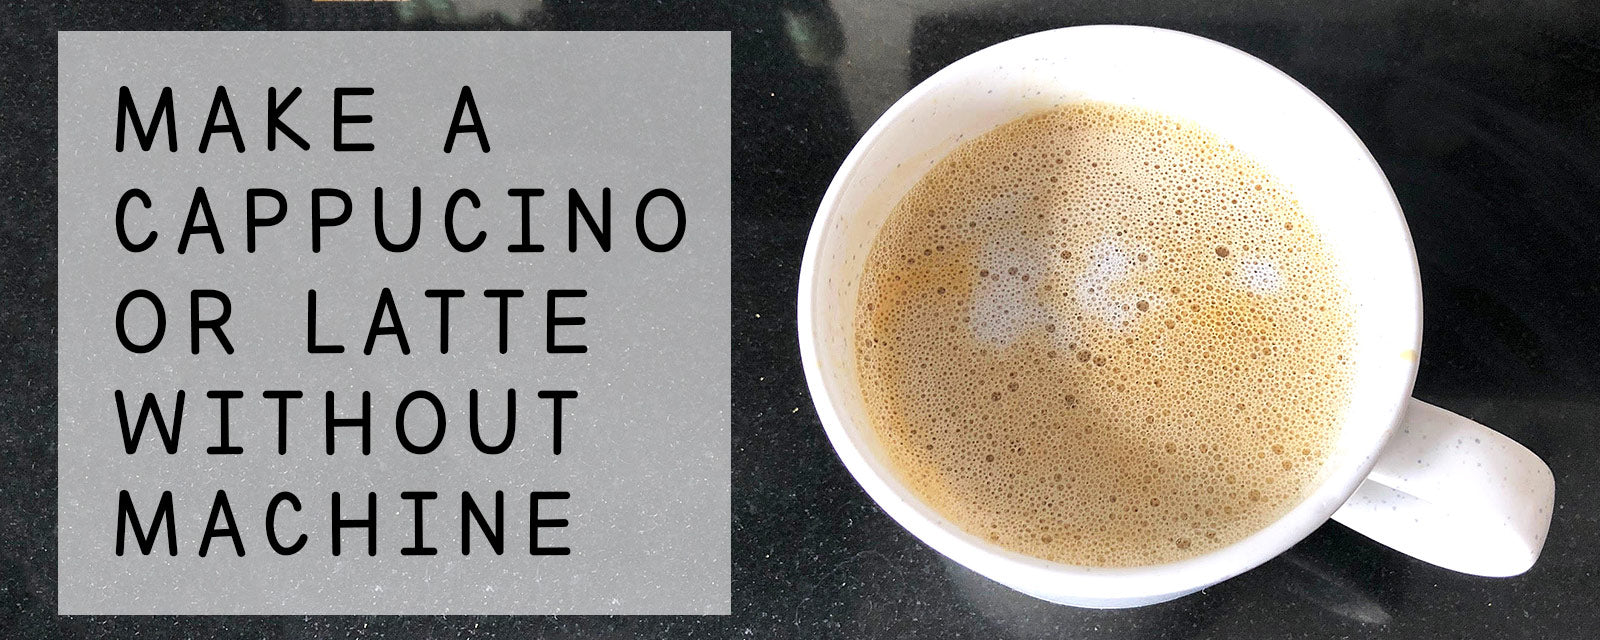 How to make a cappuccino of latte without a machine